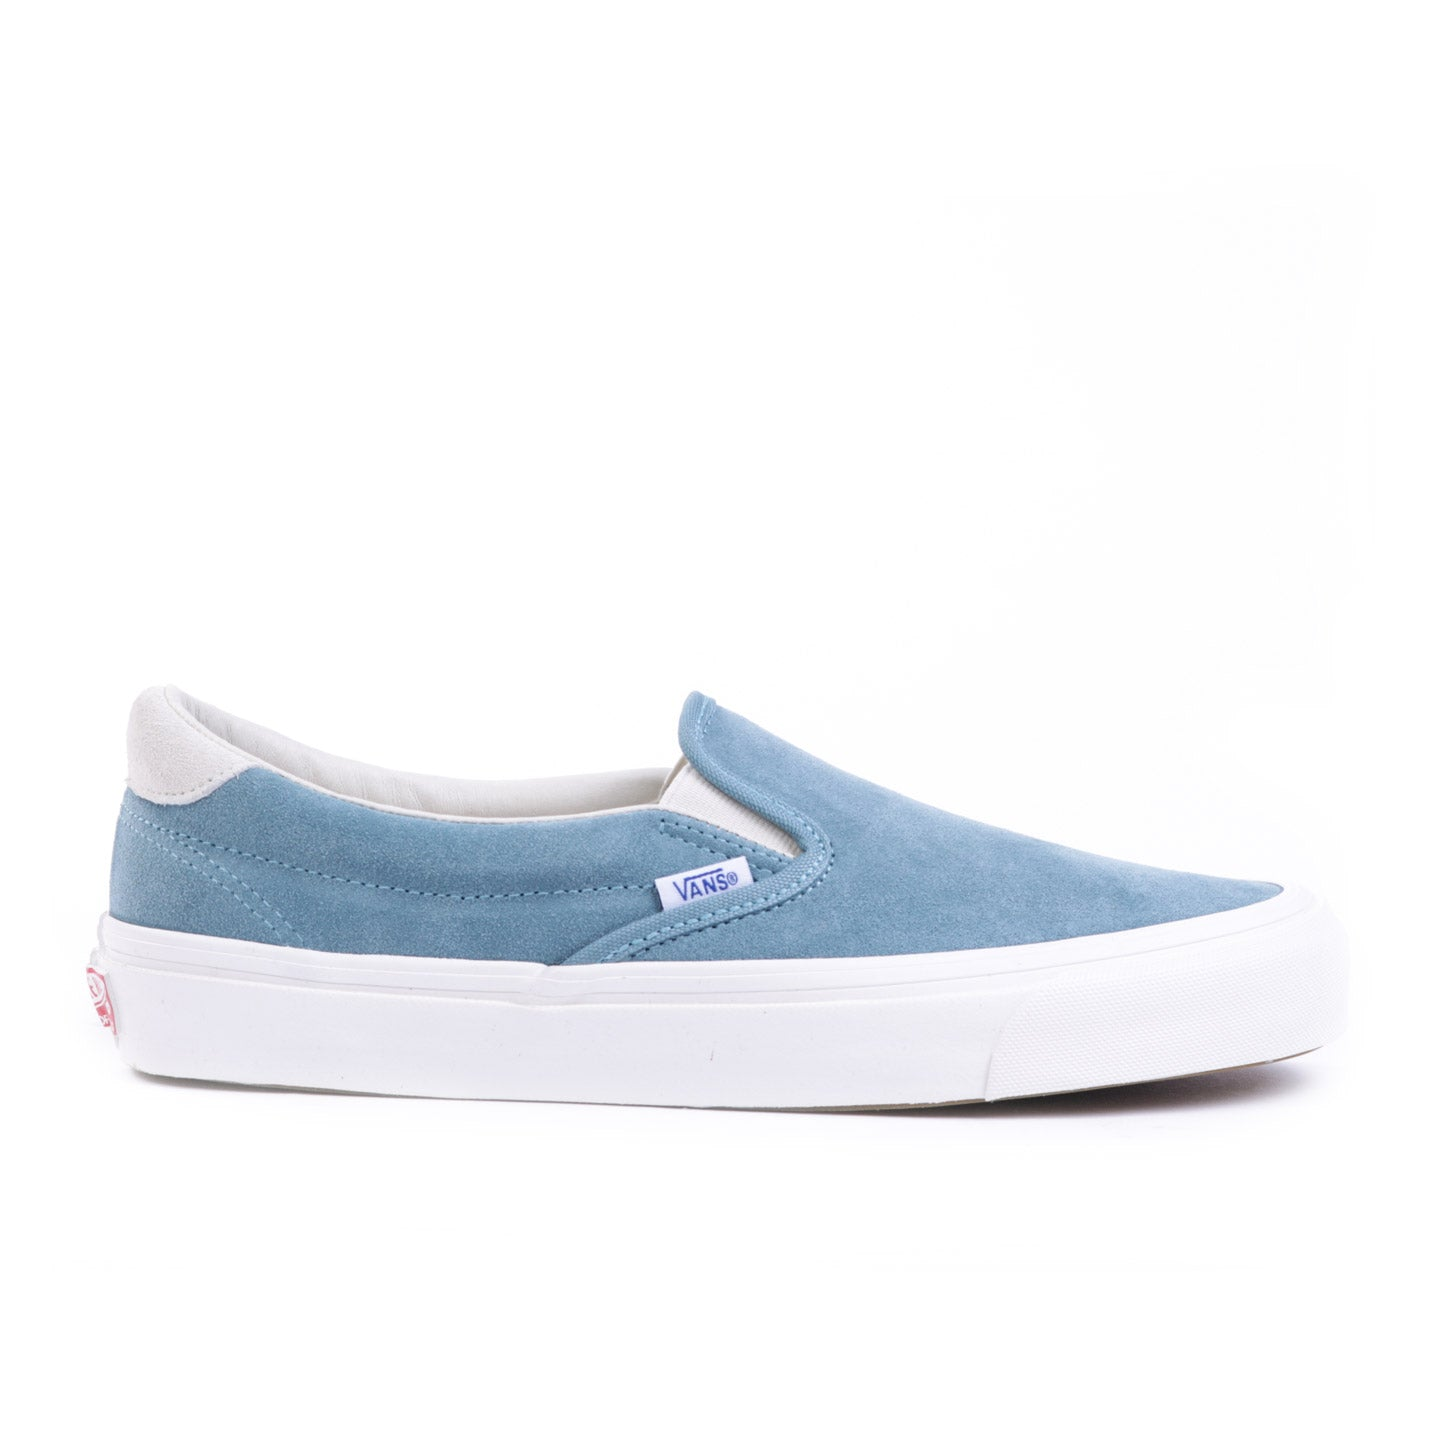 VAULT BY VANS OG SLIP-ON 59 LX SMOKE BLUE